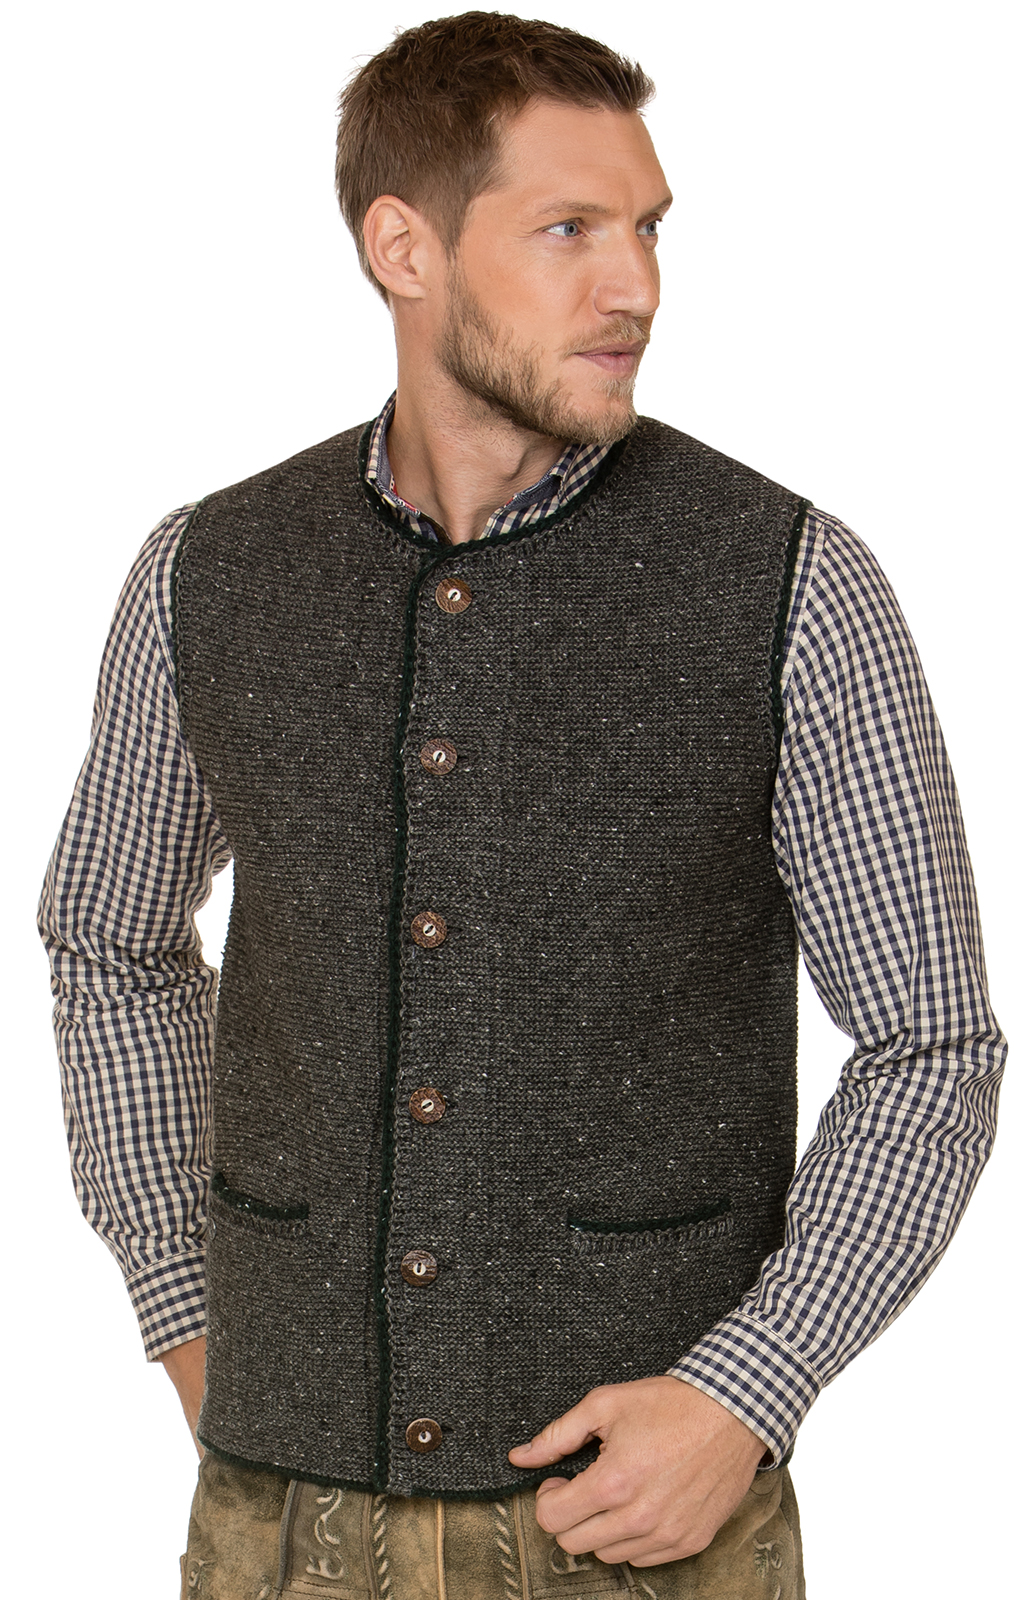 German knitted waistcoat ANDY pebble von Stockerpoint